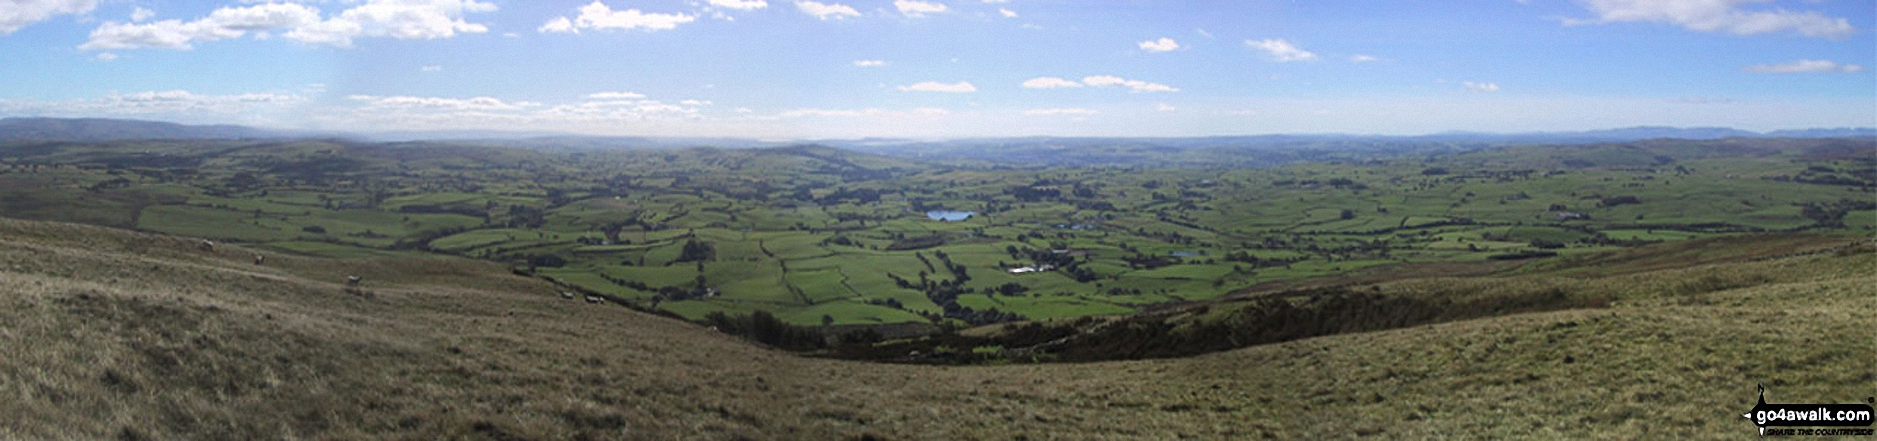 *Kendal and Morecambe Bay from Whinfell Beacon